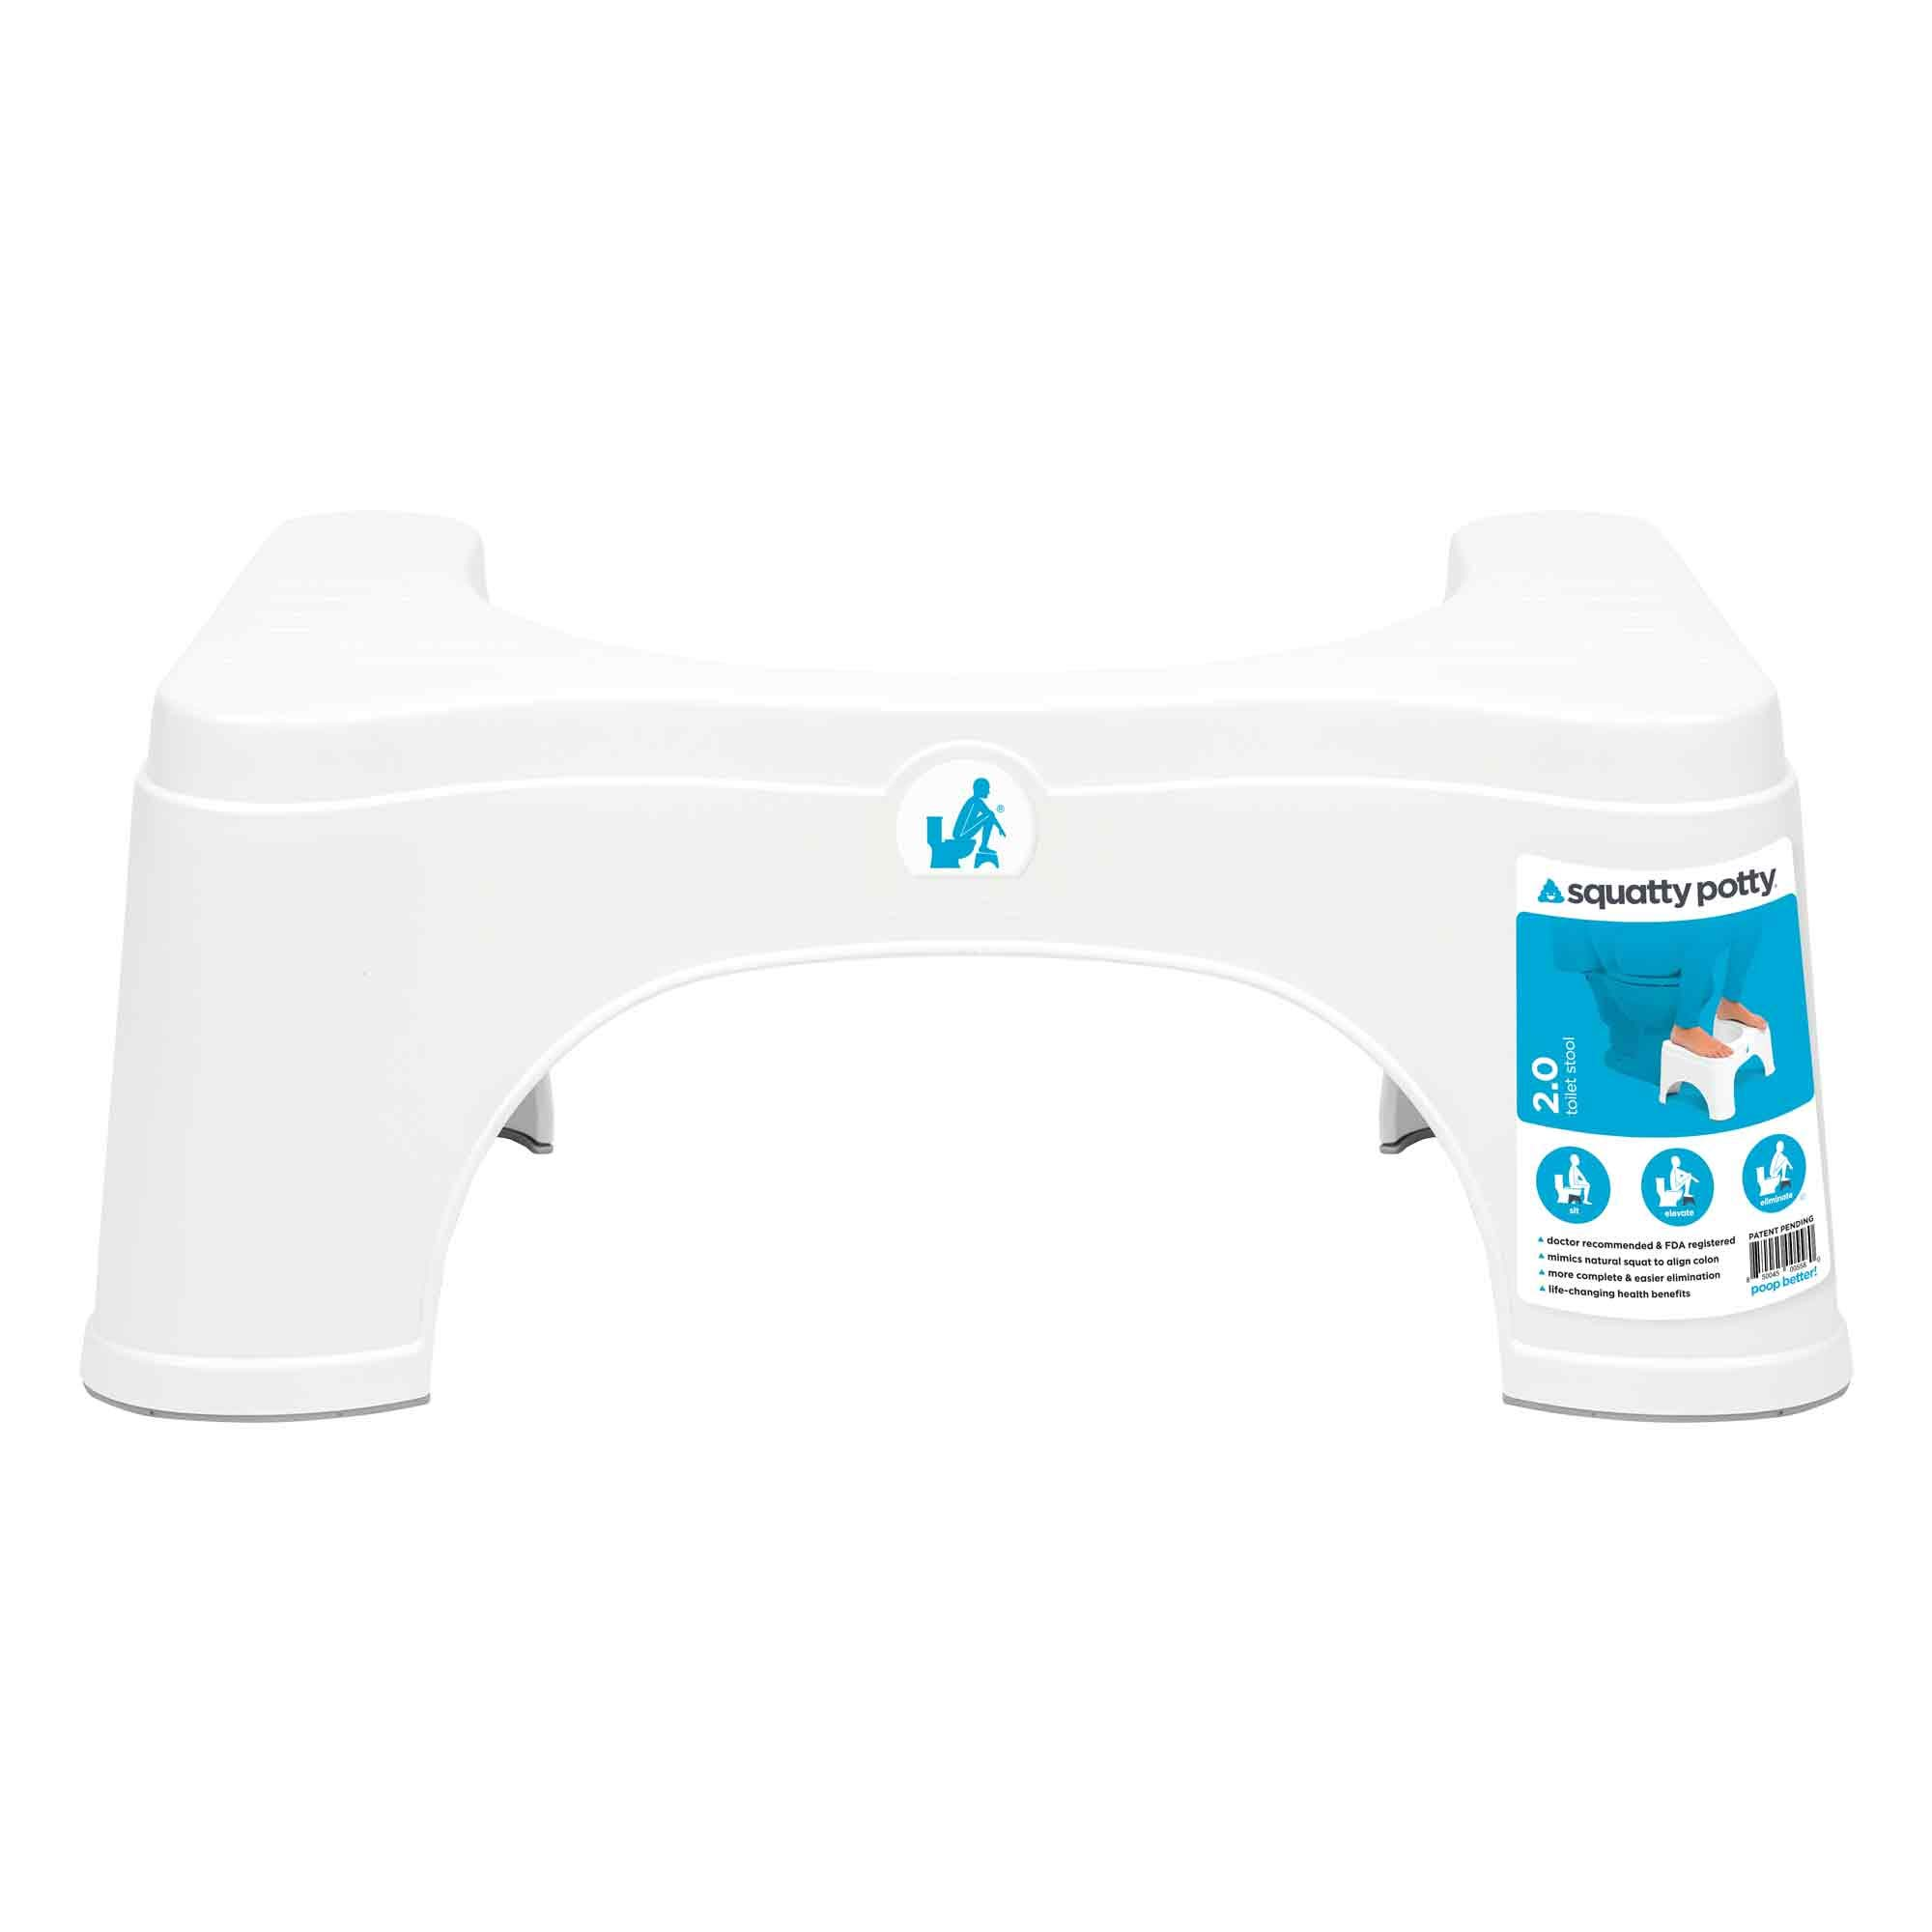 Squatty Potty Original Toilet Stool - 2.0 Base 7'' by Squatty Potty